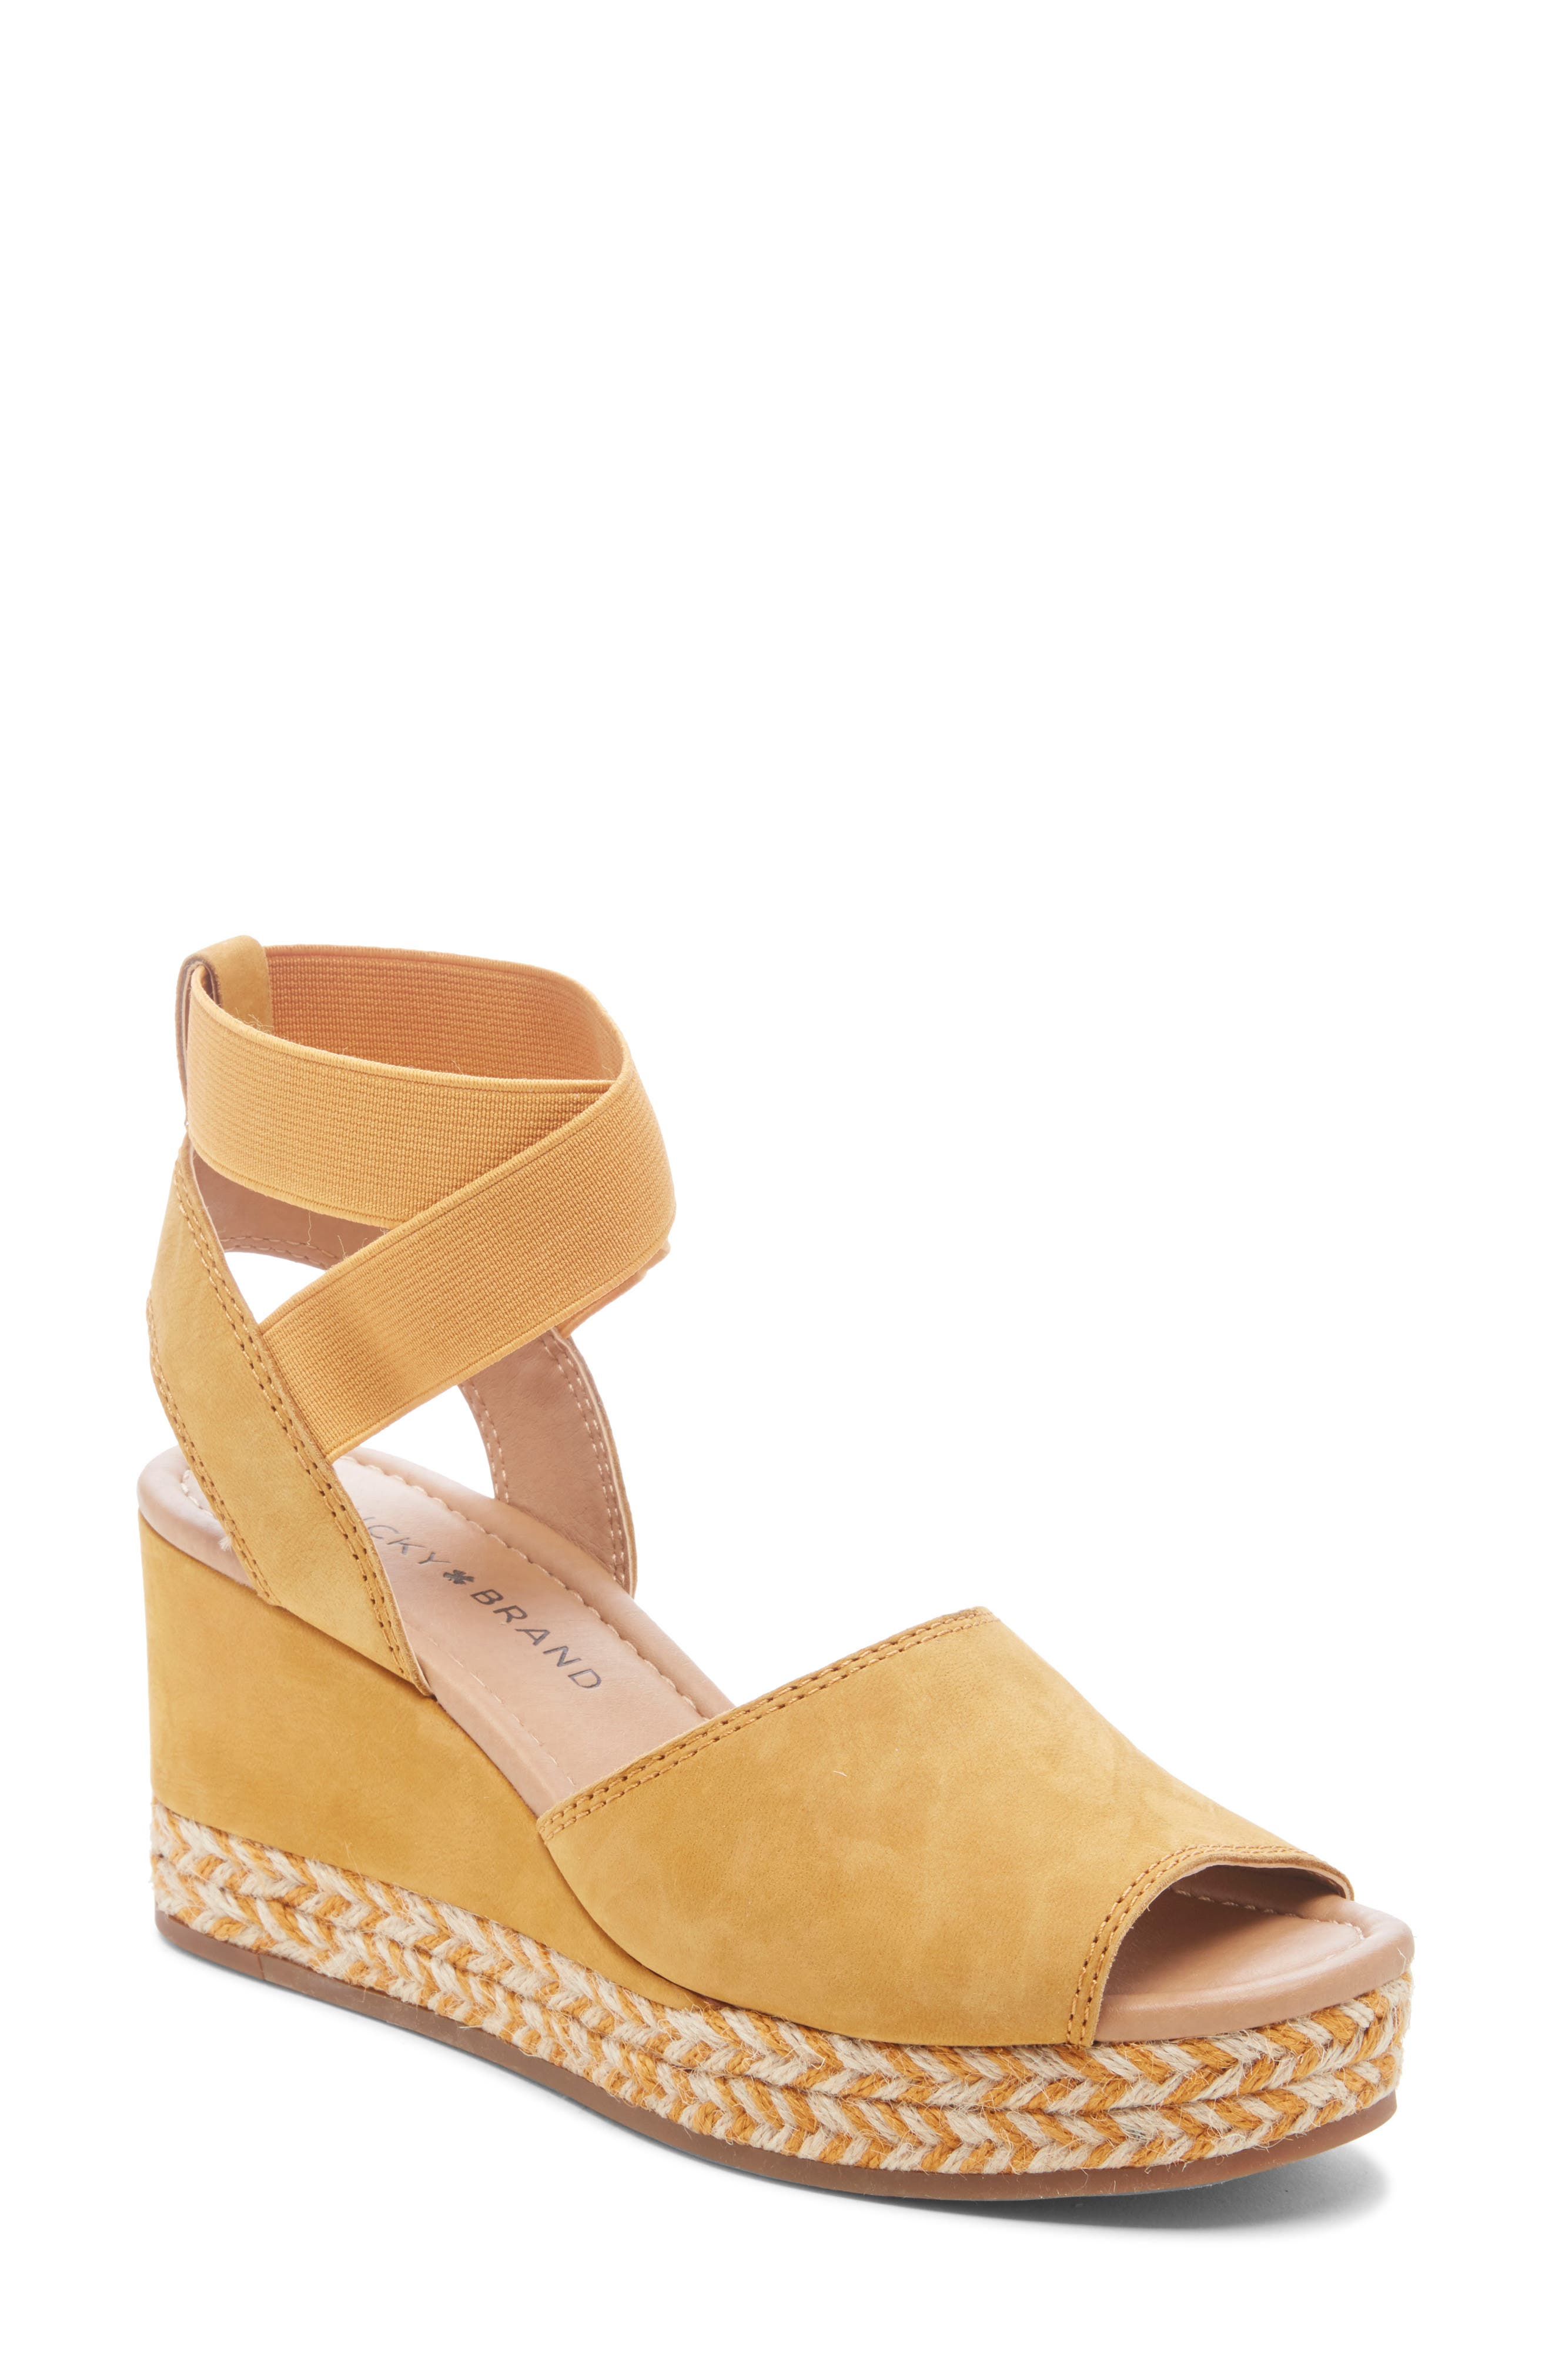 Lucky Brand Bettanie Espadrille Wedge Sandal- Yellow